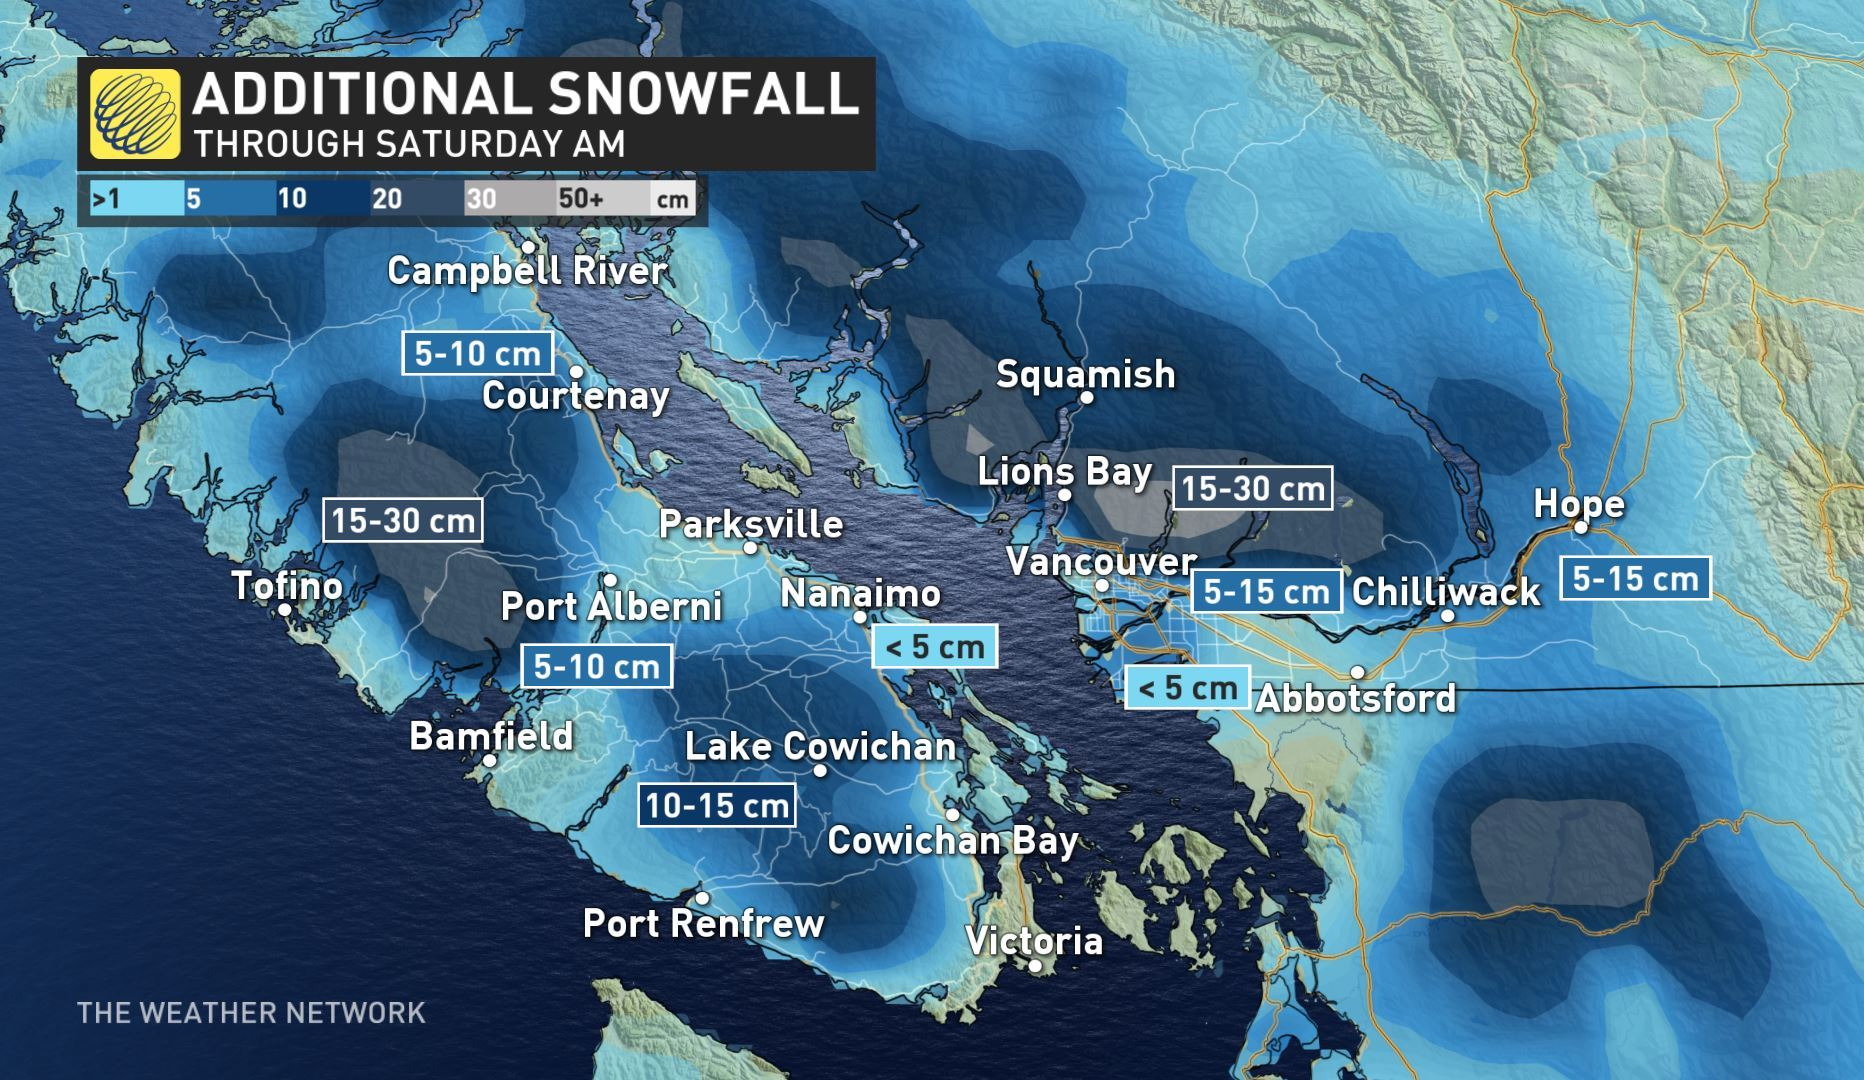 Still not over yet: Snow, wind and rain coming to Vancouver Island